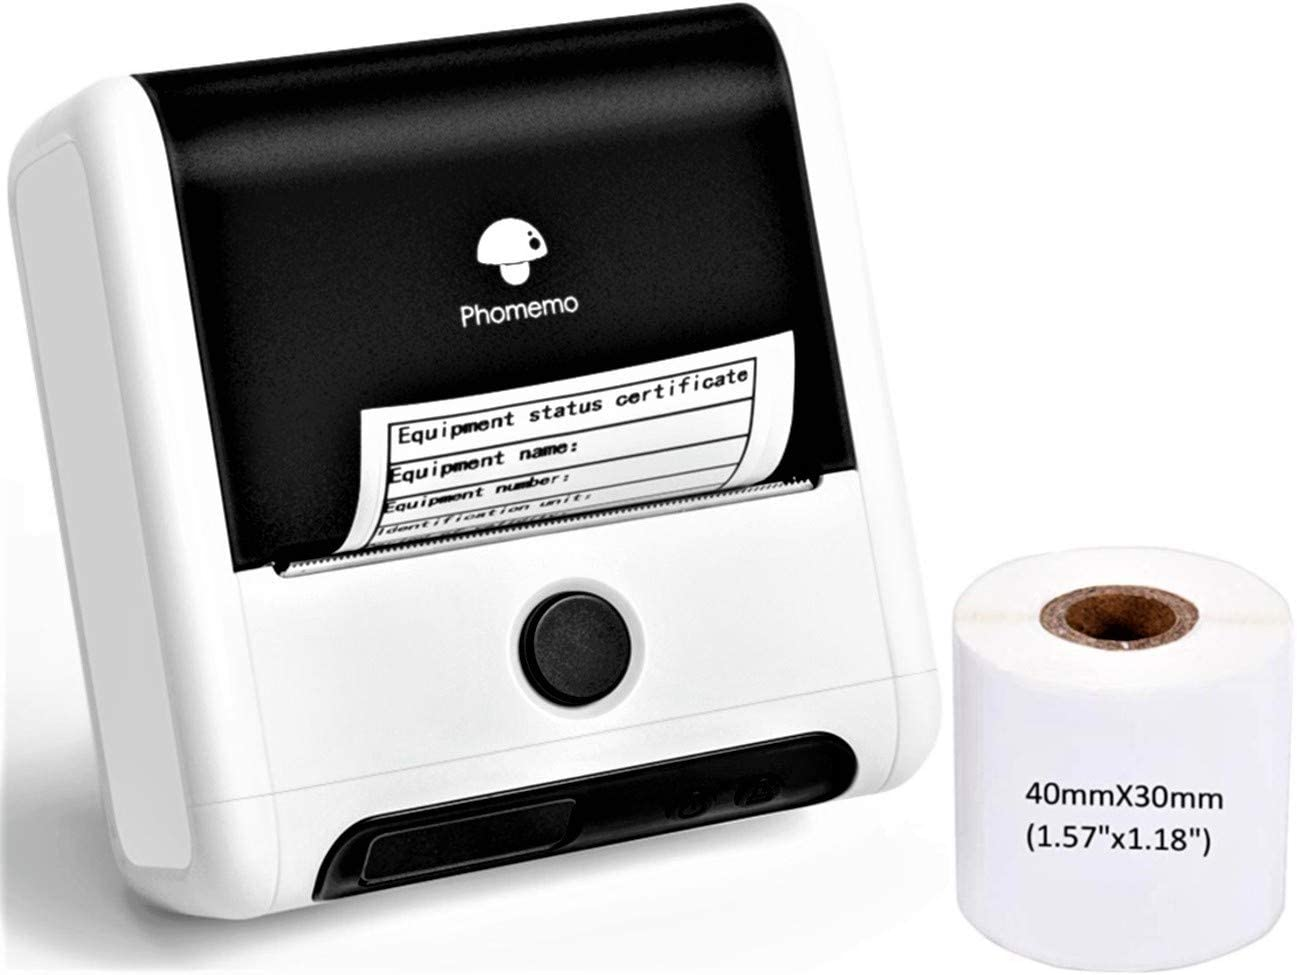 Phomemo-M200 Label Maker - 3 Inch 80mm Bluetooth Thermal Label Printer for Android & iOS System for Labeling, QR Code, Barcode, Mailing, Images and More Use for Small Business,Retailing- White